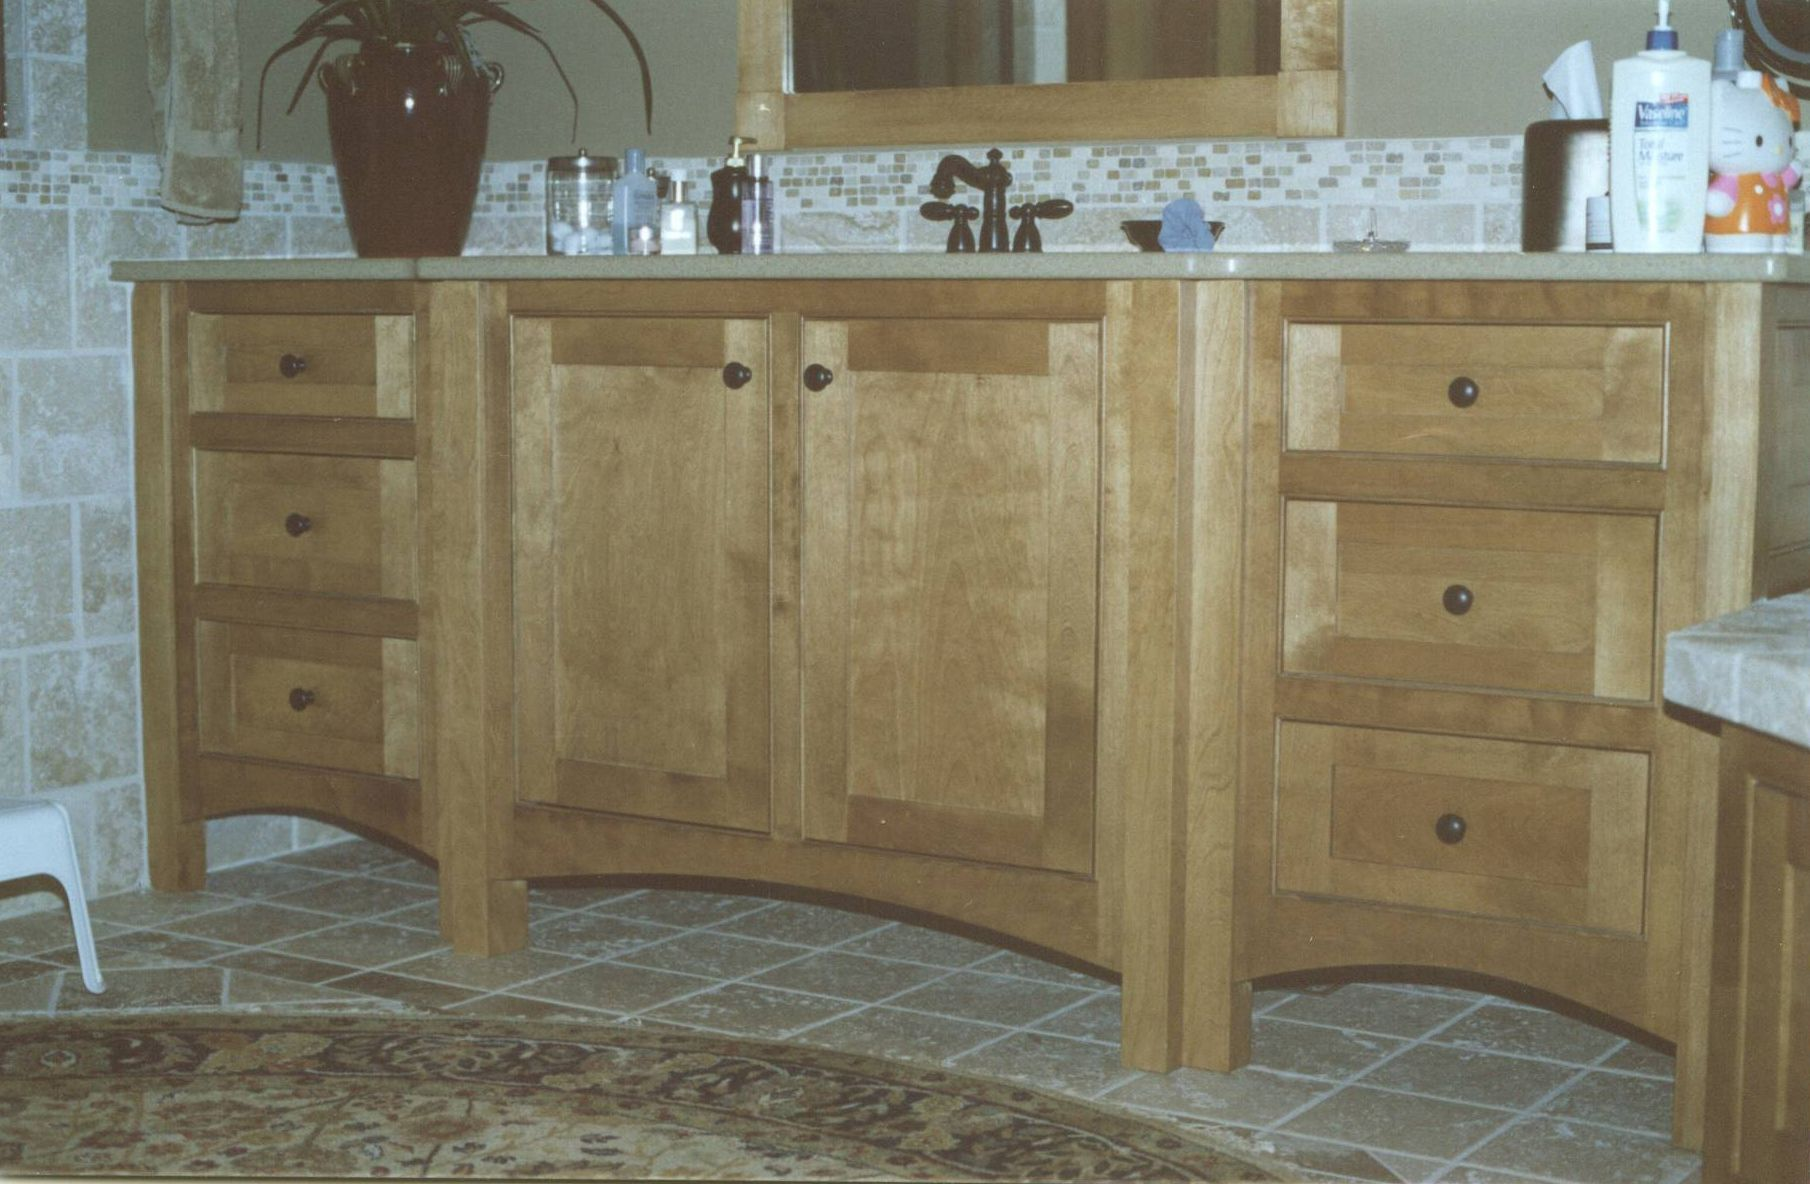 Handmade Custom Birch Vanity By T. Richard Woodworking Llc